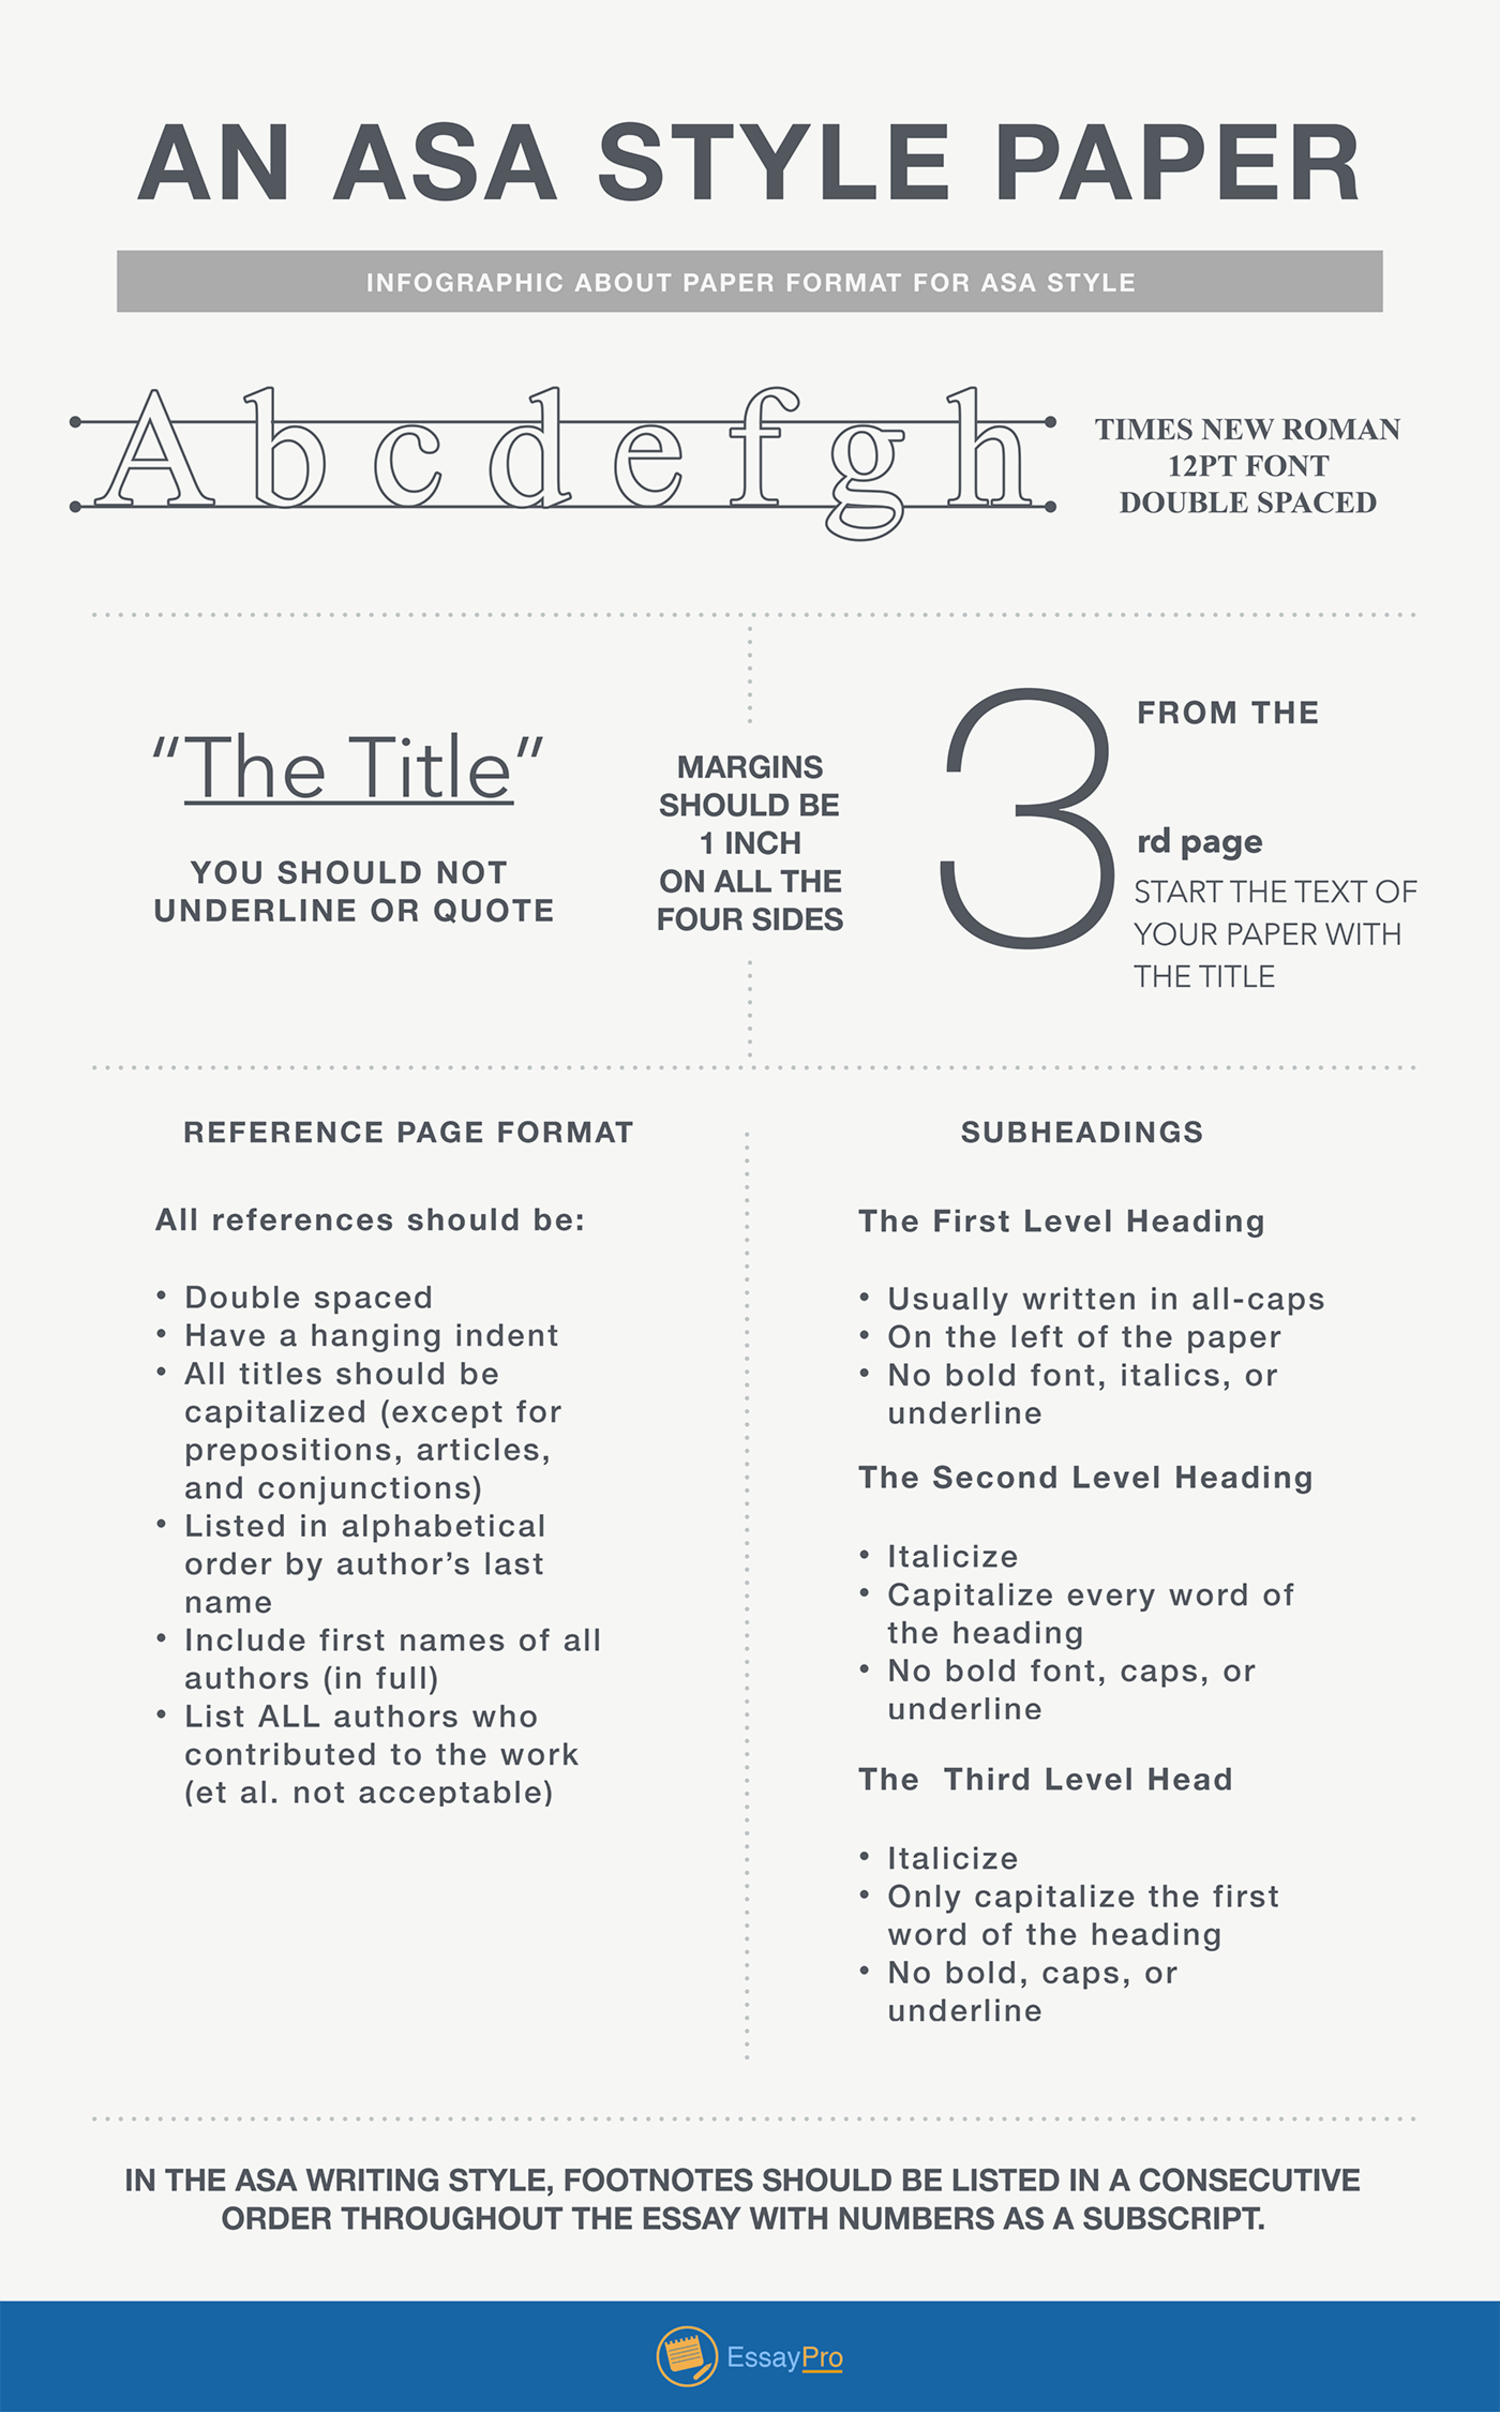 asa style paper format styles and formats pinterest writing